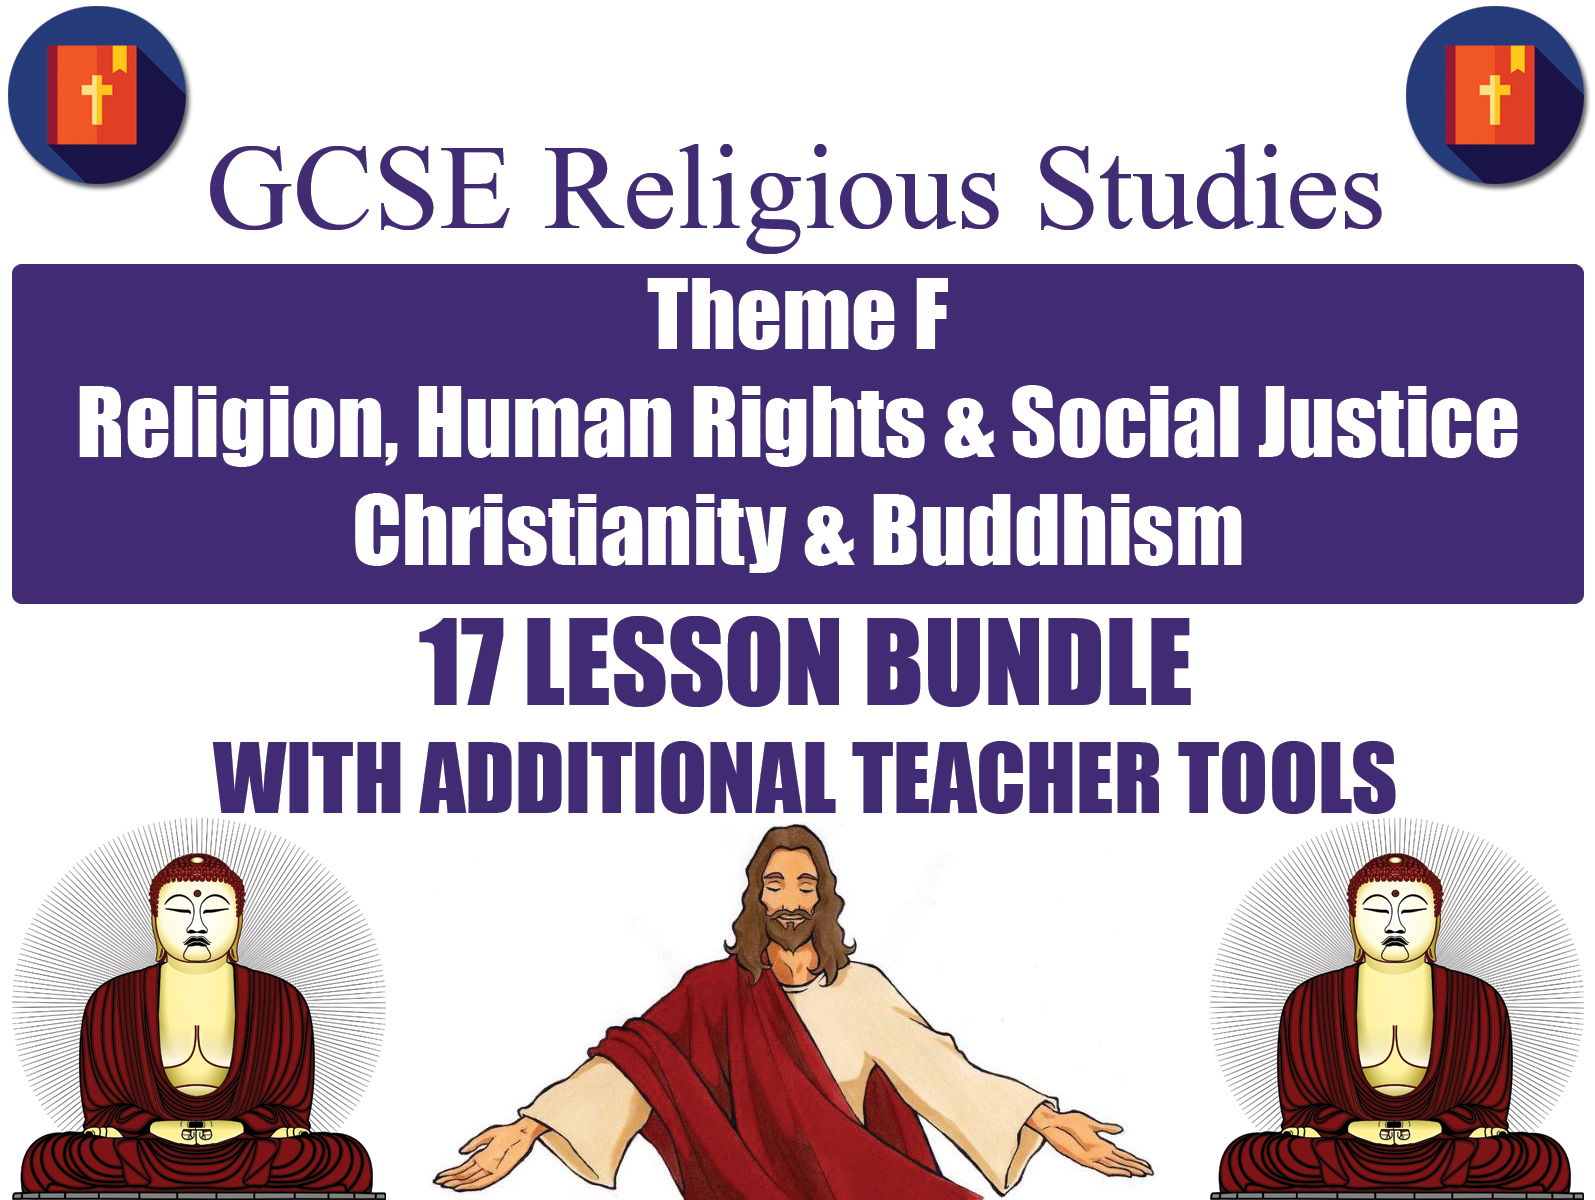 GCSE Christianity & Buddhism - Religion, Human Rights & Social Justice (17 Lessons)